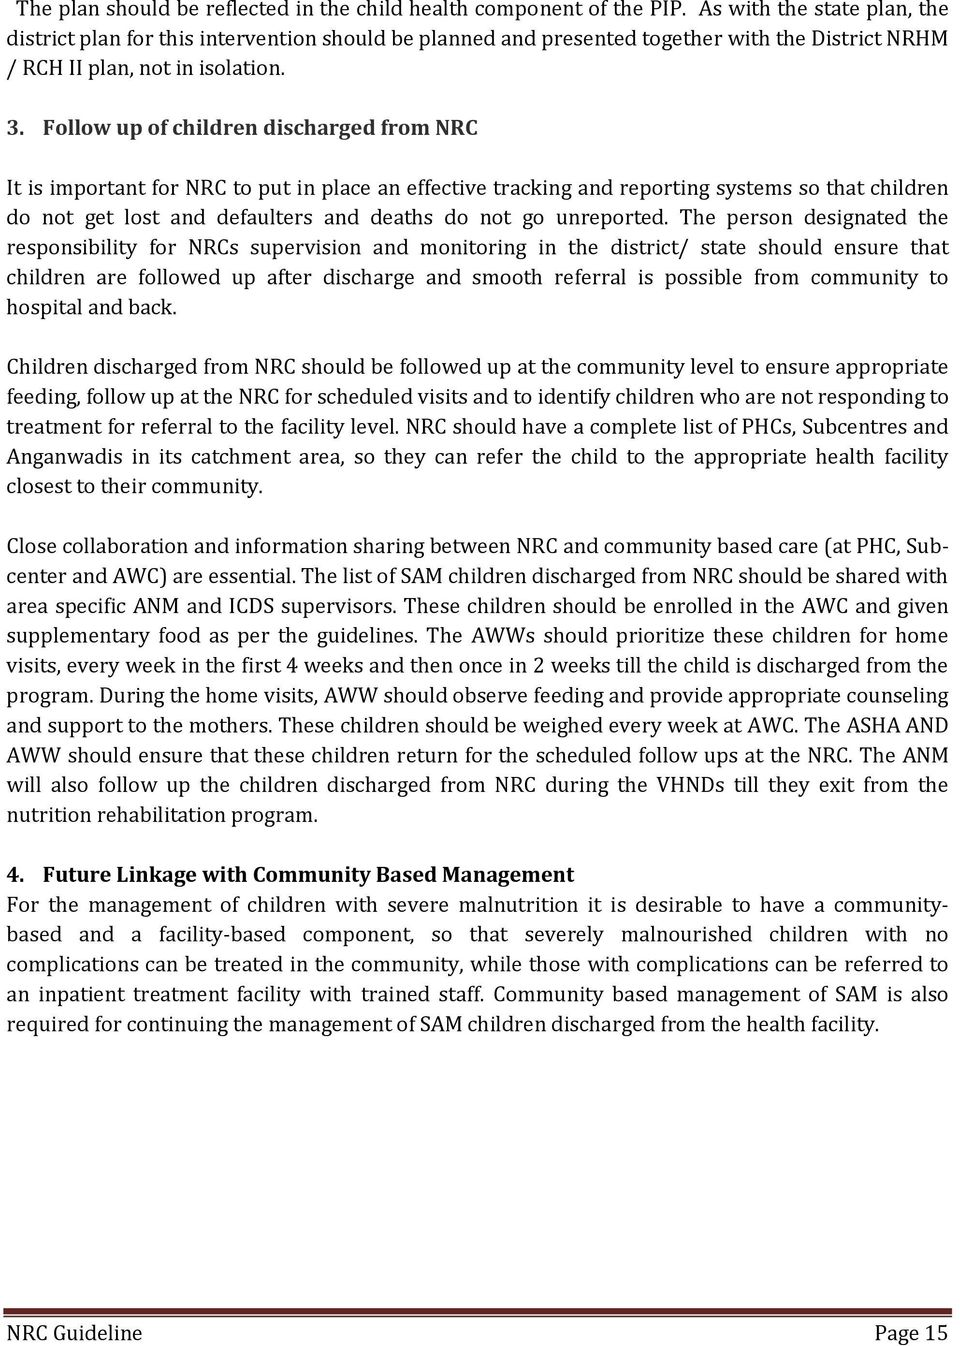 Follow up of children discharged from NRC It is important for NRC to put in place an effective tracking and reporting systems so that children do not get lost and defaulters and deaths do not go